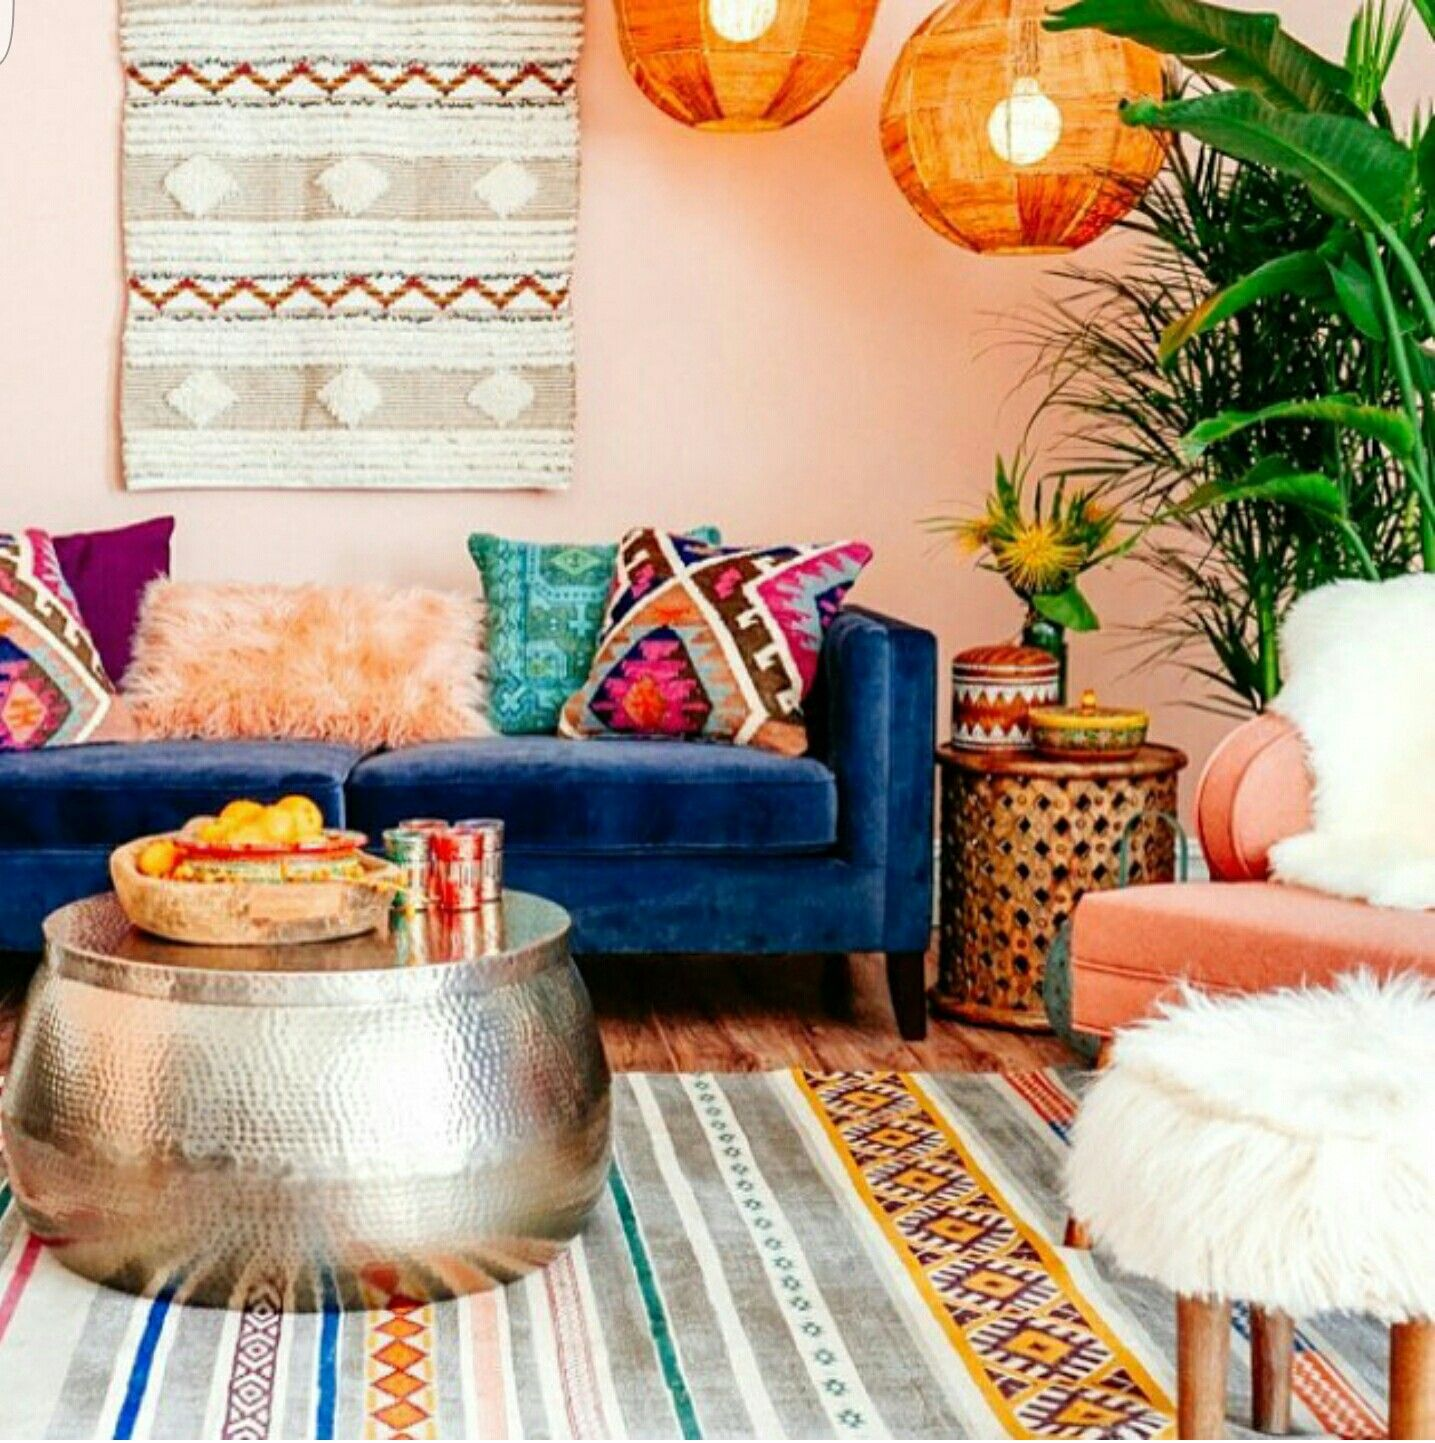 bohemian life » boho home design + decor » nontraditional living ...